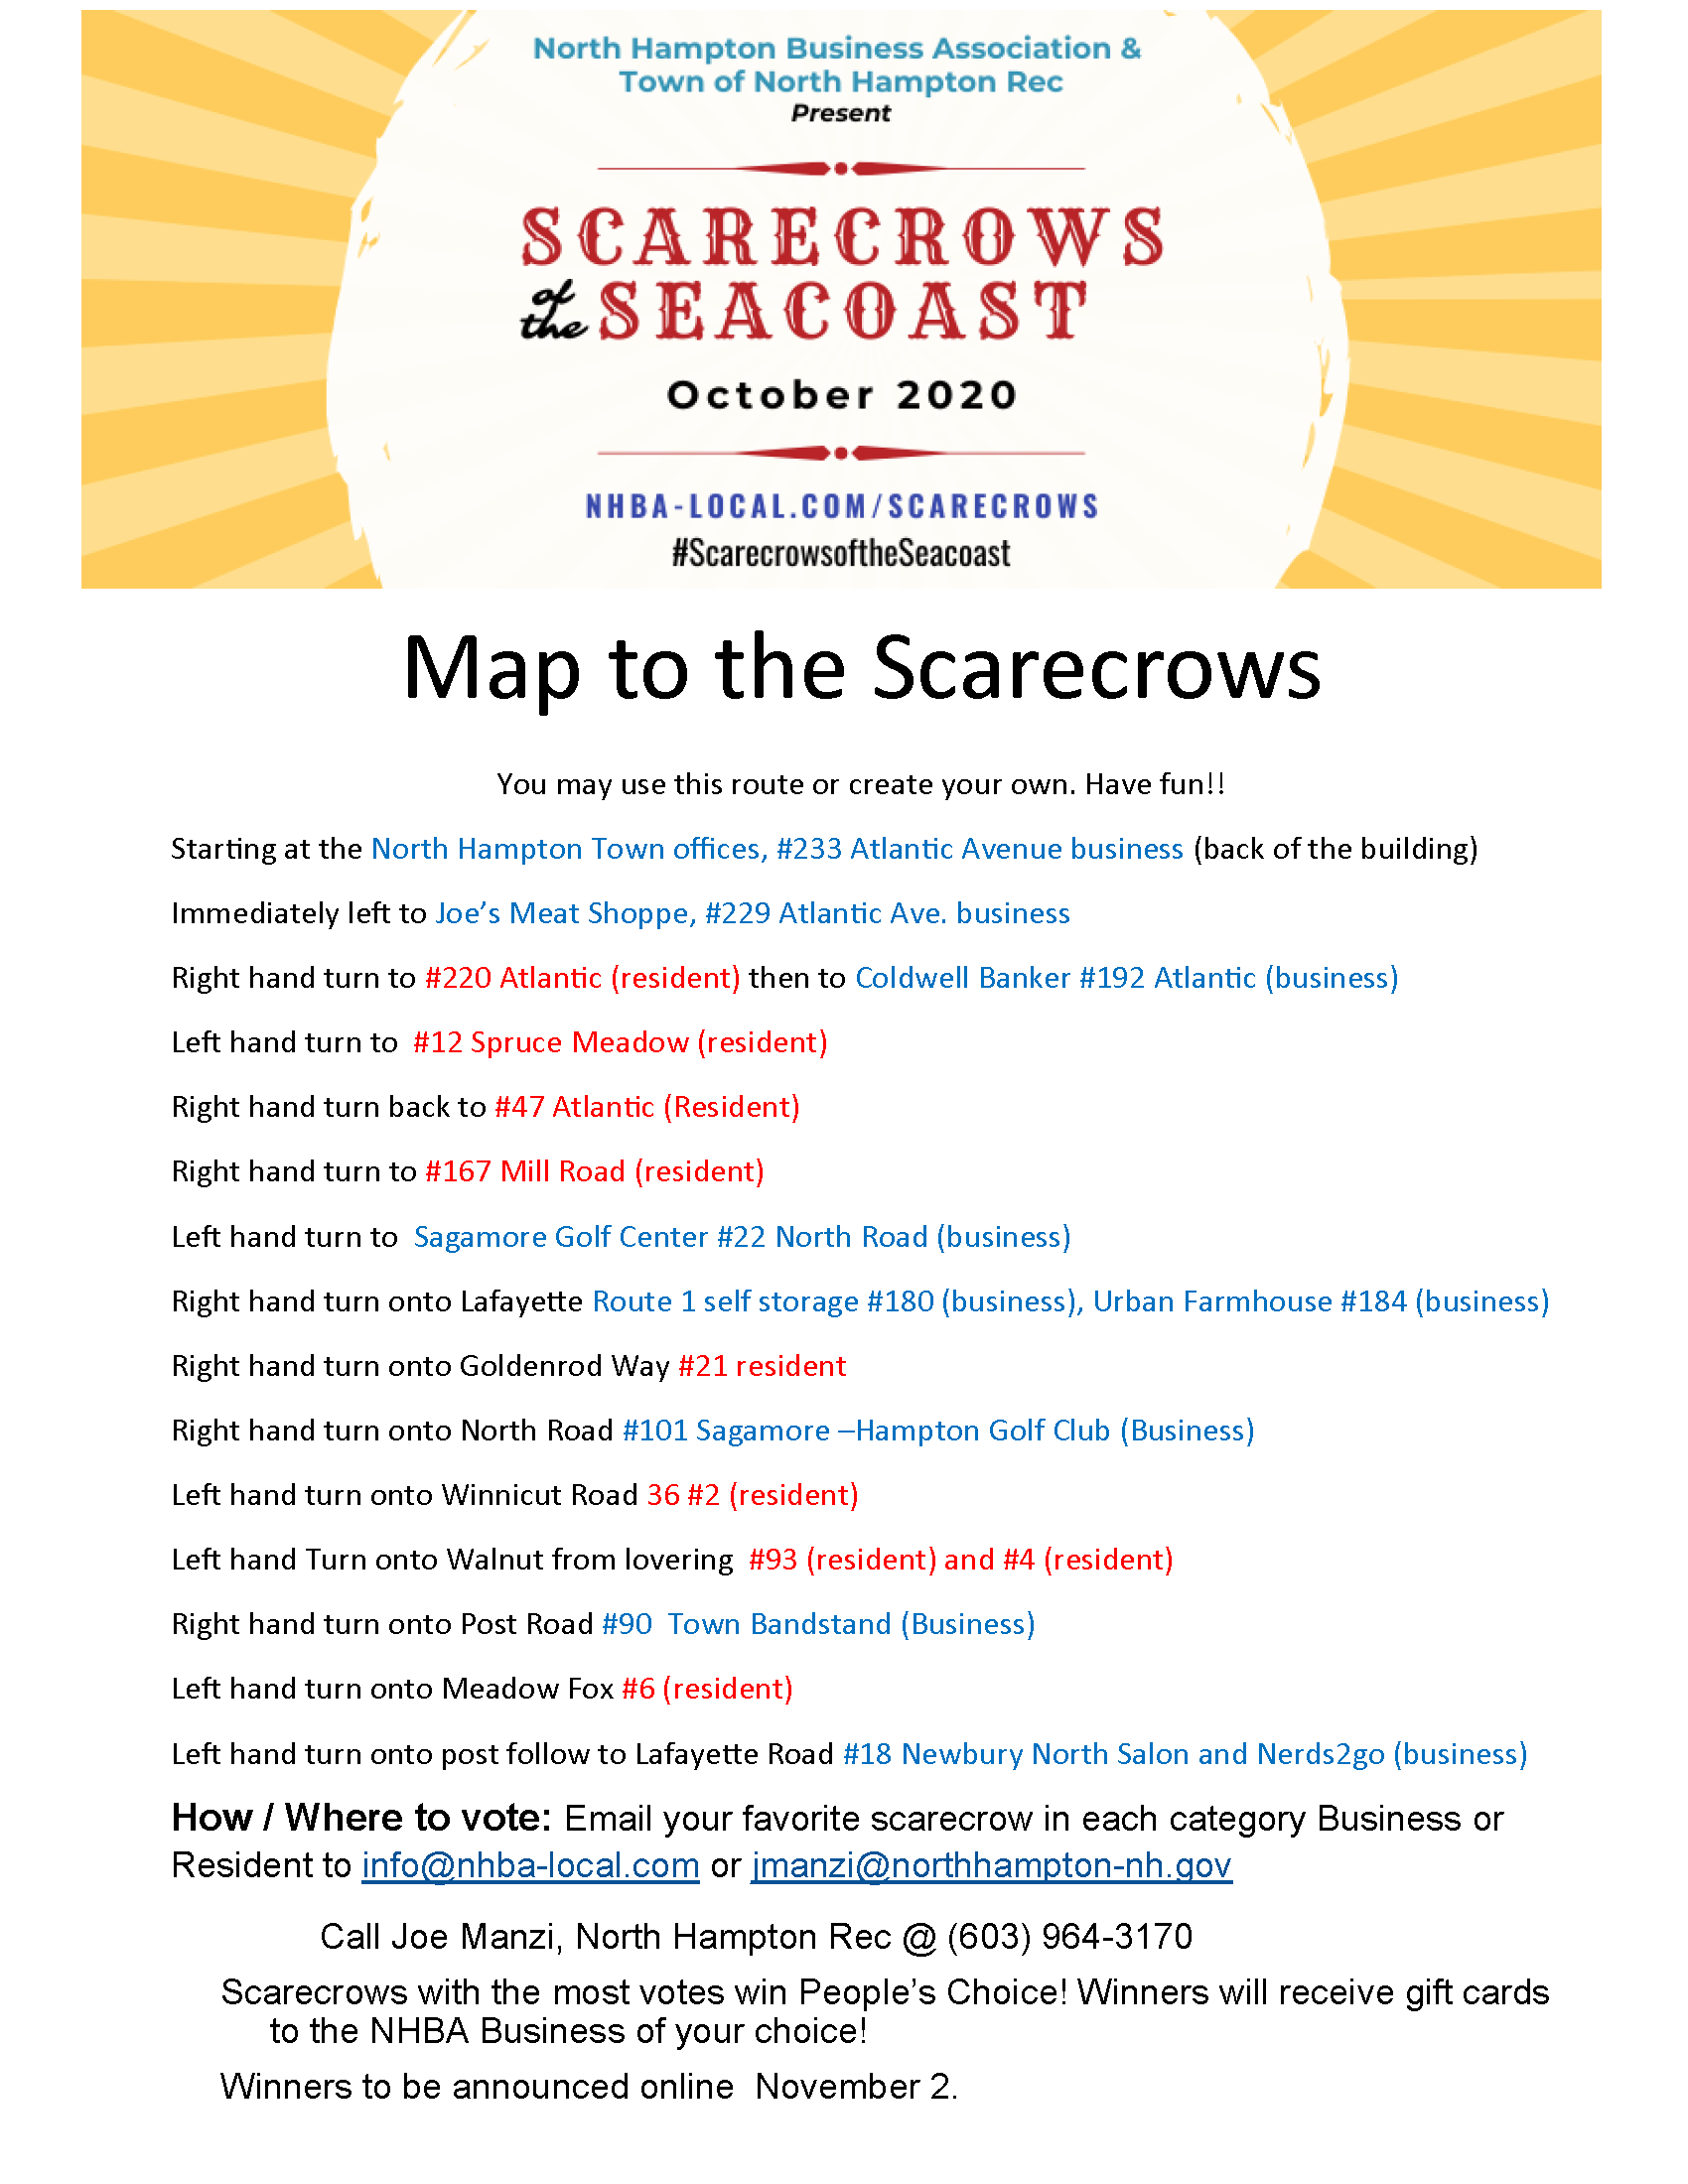 Scarecrows of the Seacoast 2020 Scarecrow Map